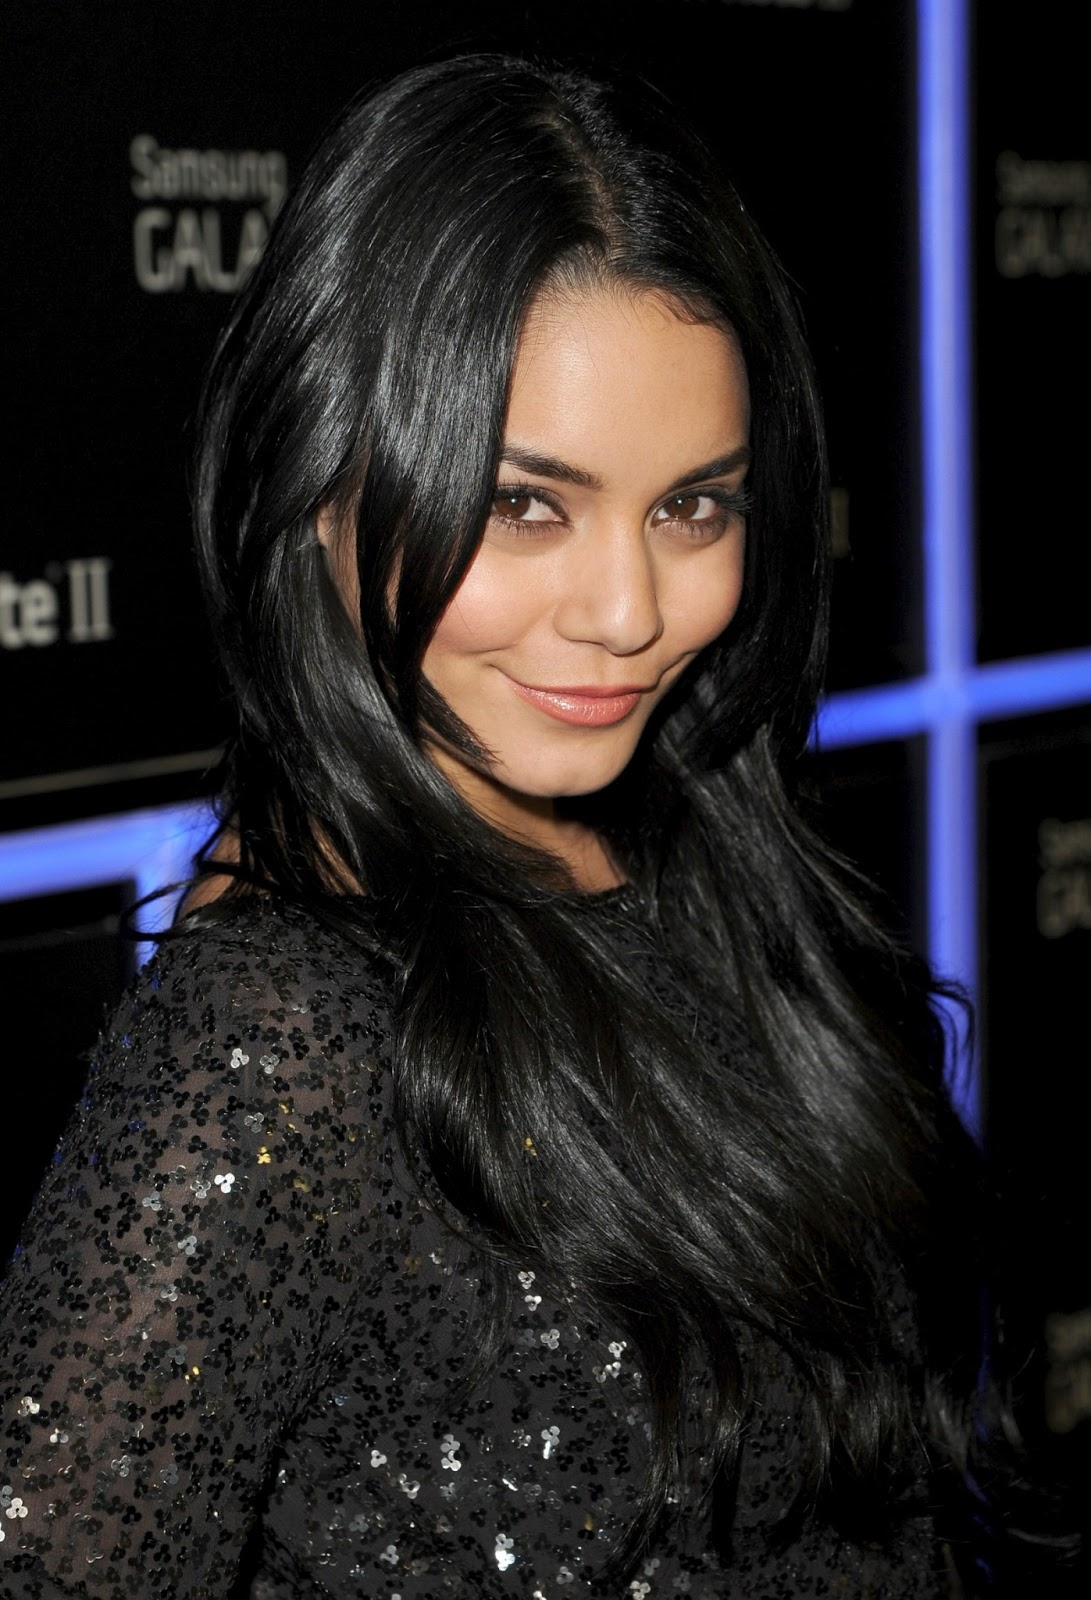 Vanessa Hudgens Samsung Galaxy Note II Launch in Beverly Hills